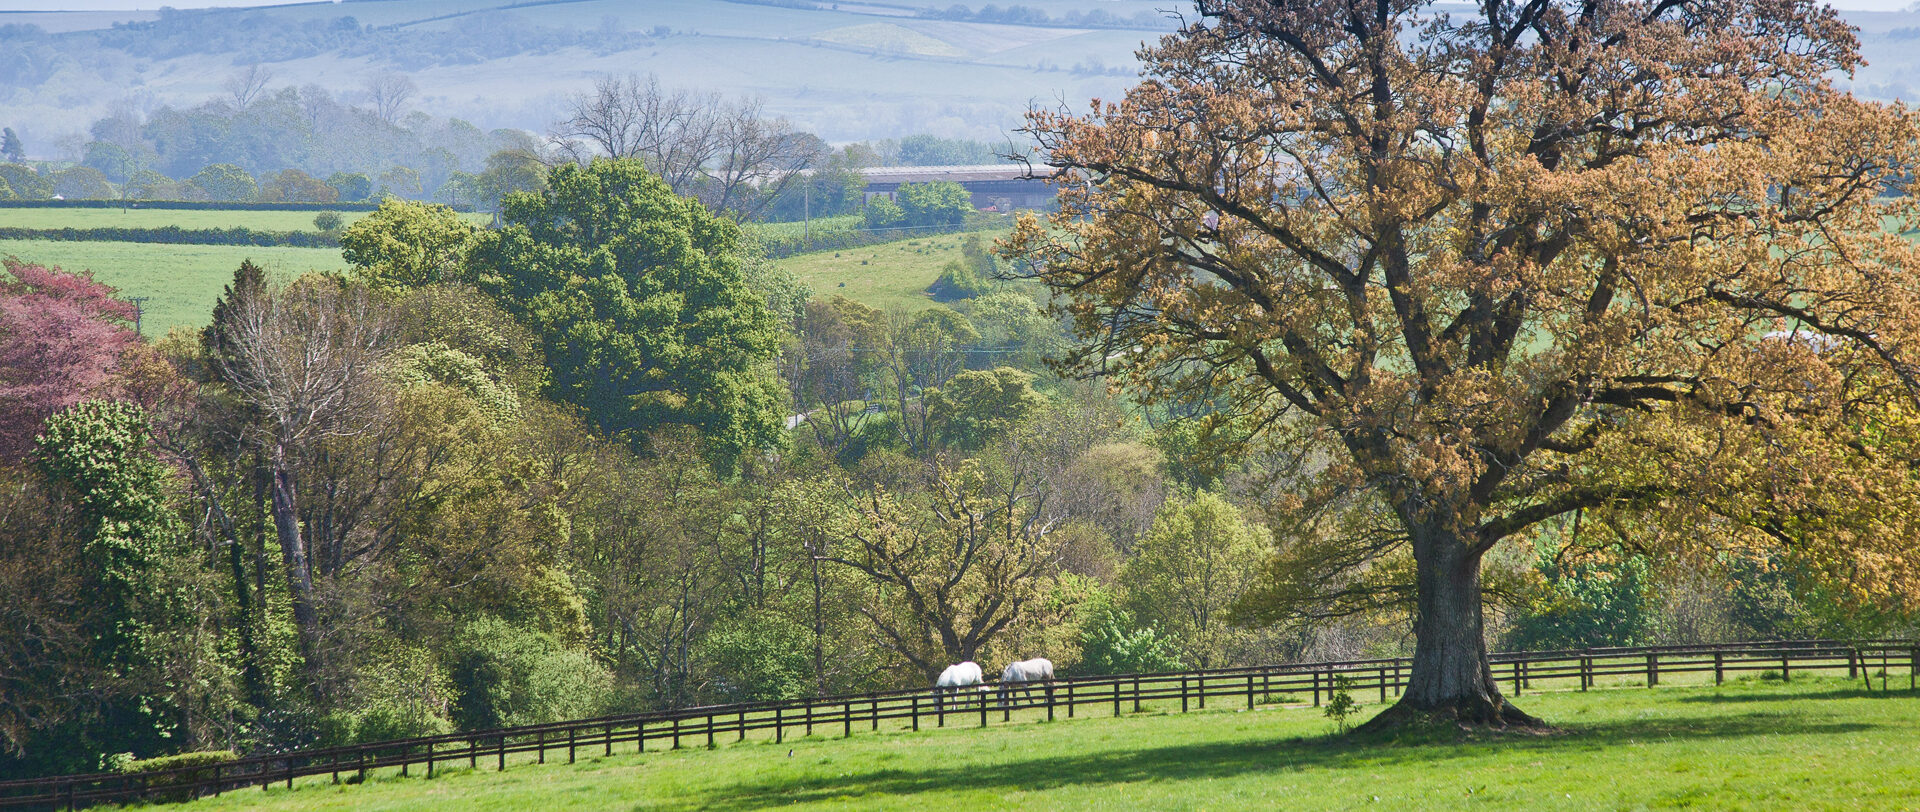 Rural Property in the Cranborne Chase